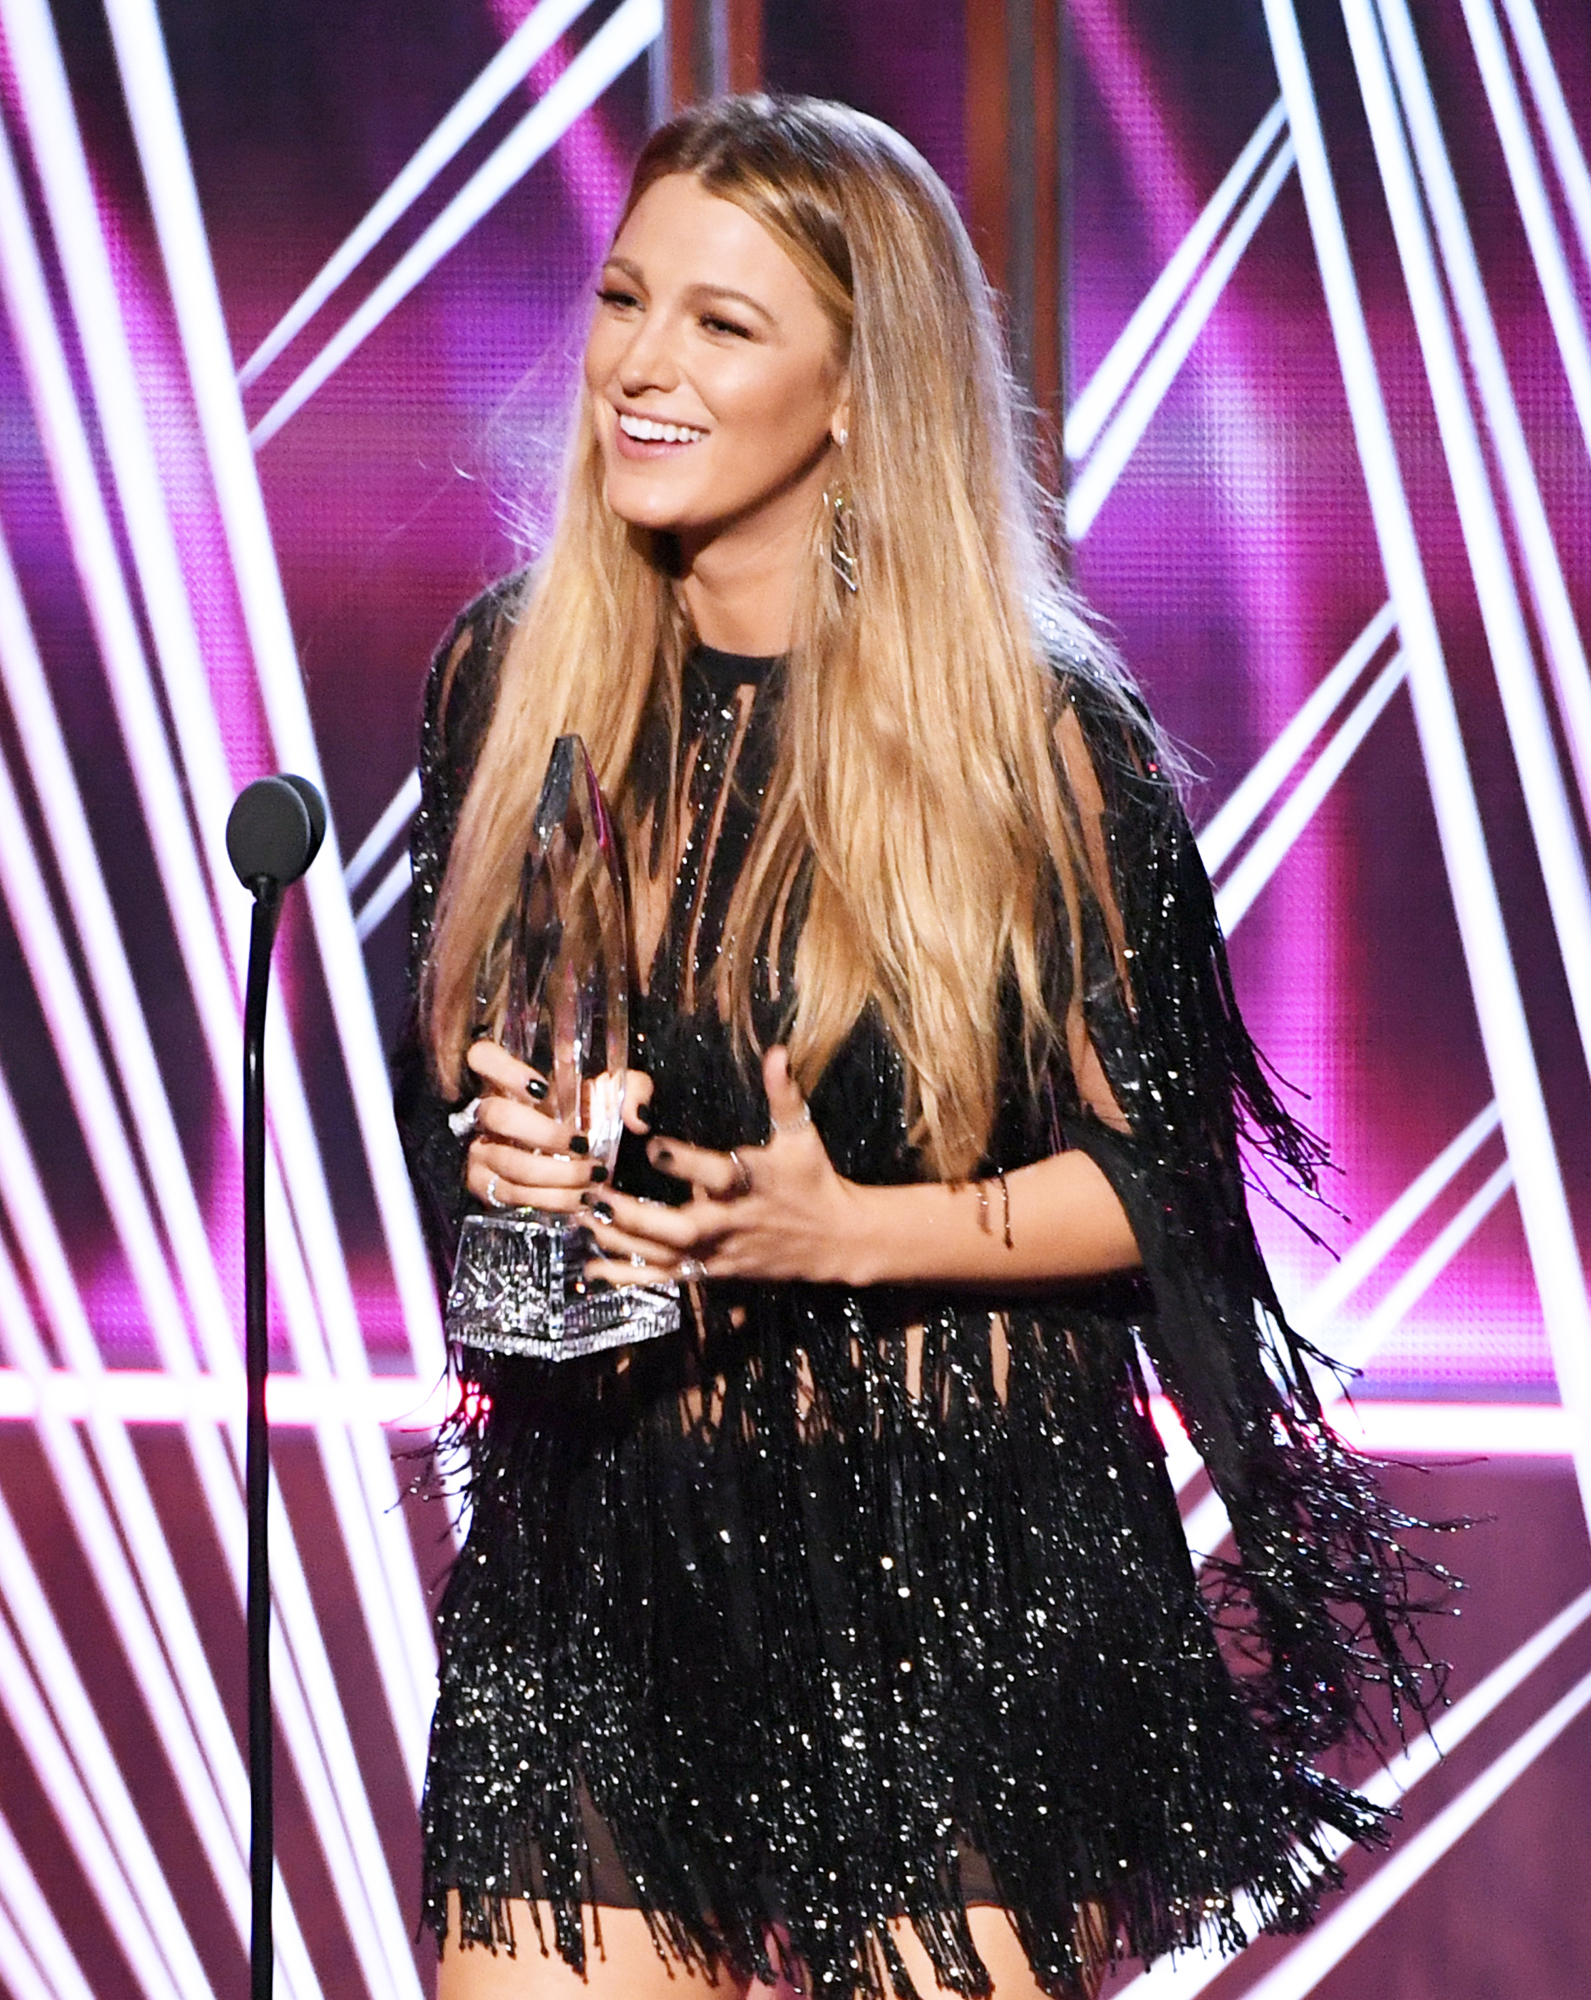 Blake Lively Accepts Her First PCA in a Leg-Baring Swingy Fringe Mini